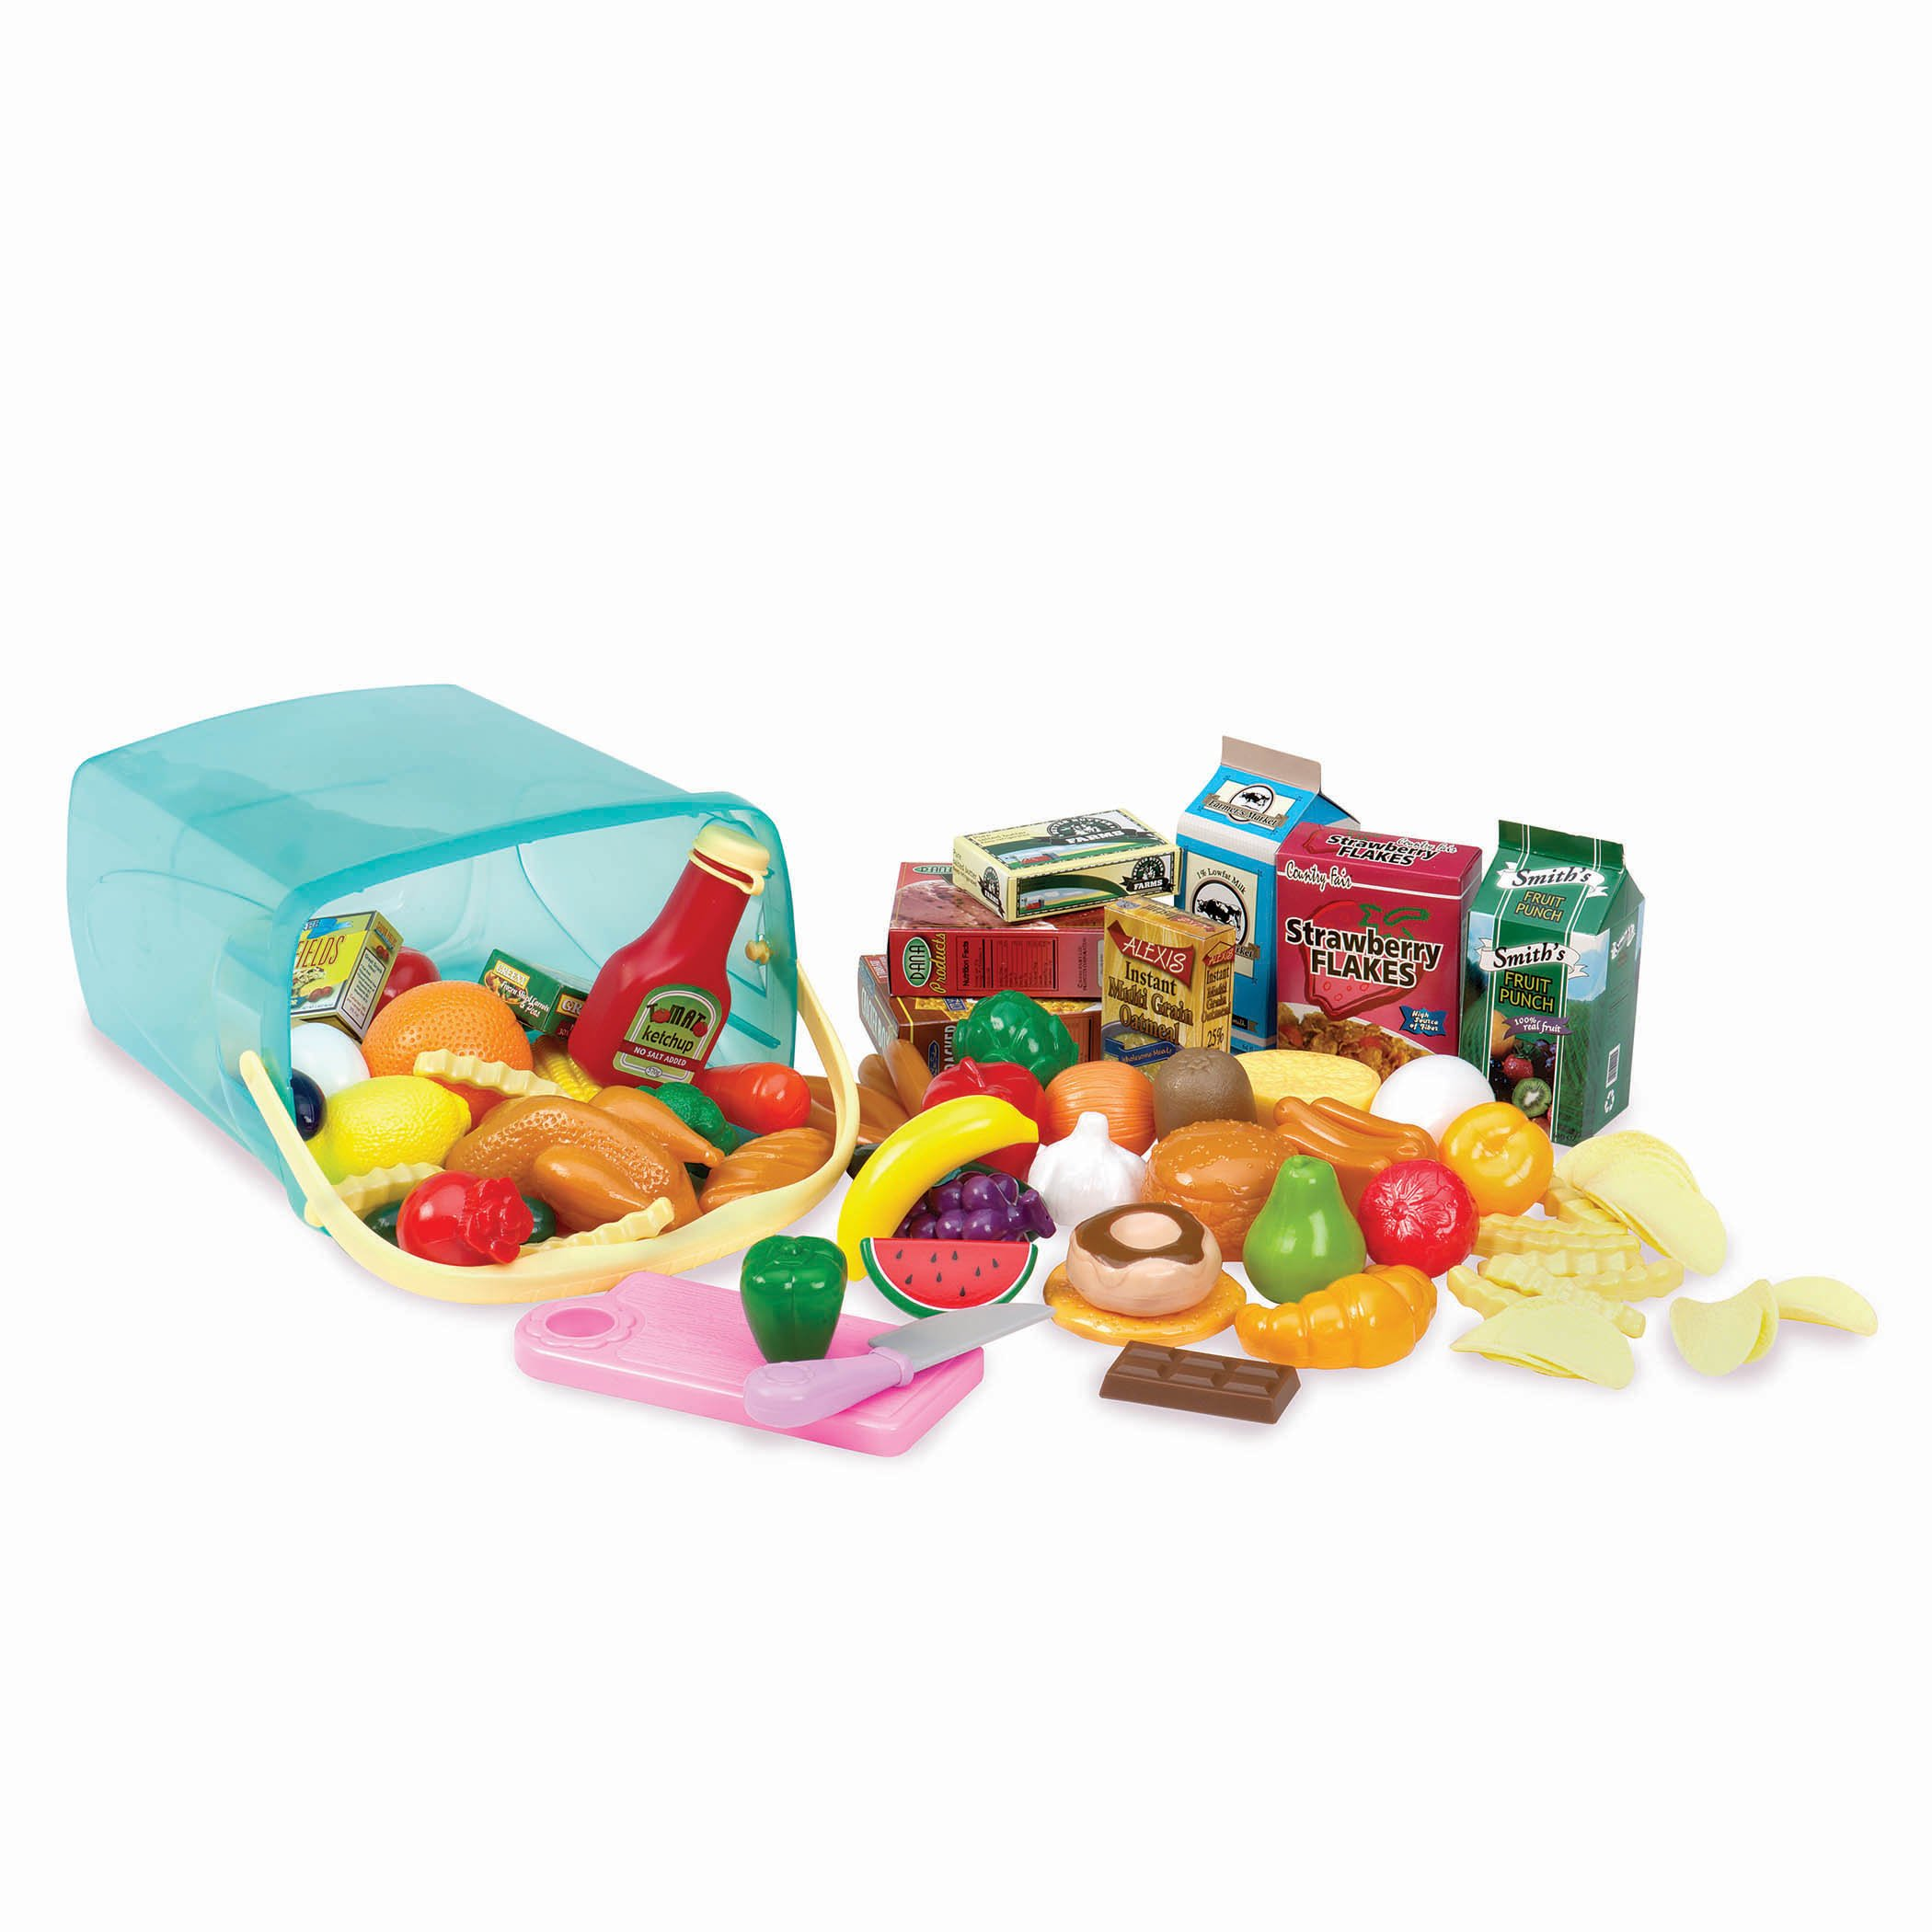 Play Circle by Battat - Pantry in a Bucket - 79-piece Pretend Food Playset with Storage Bin - Kitchen Toys and Plastic Play-Food for Toddlers Age 3 Years and Up by Play Circle by Battat